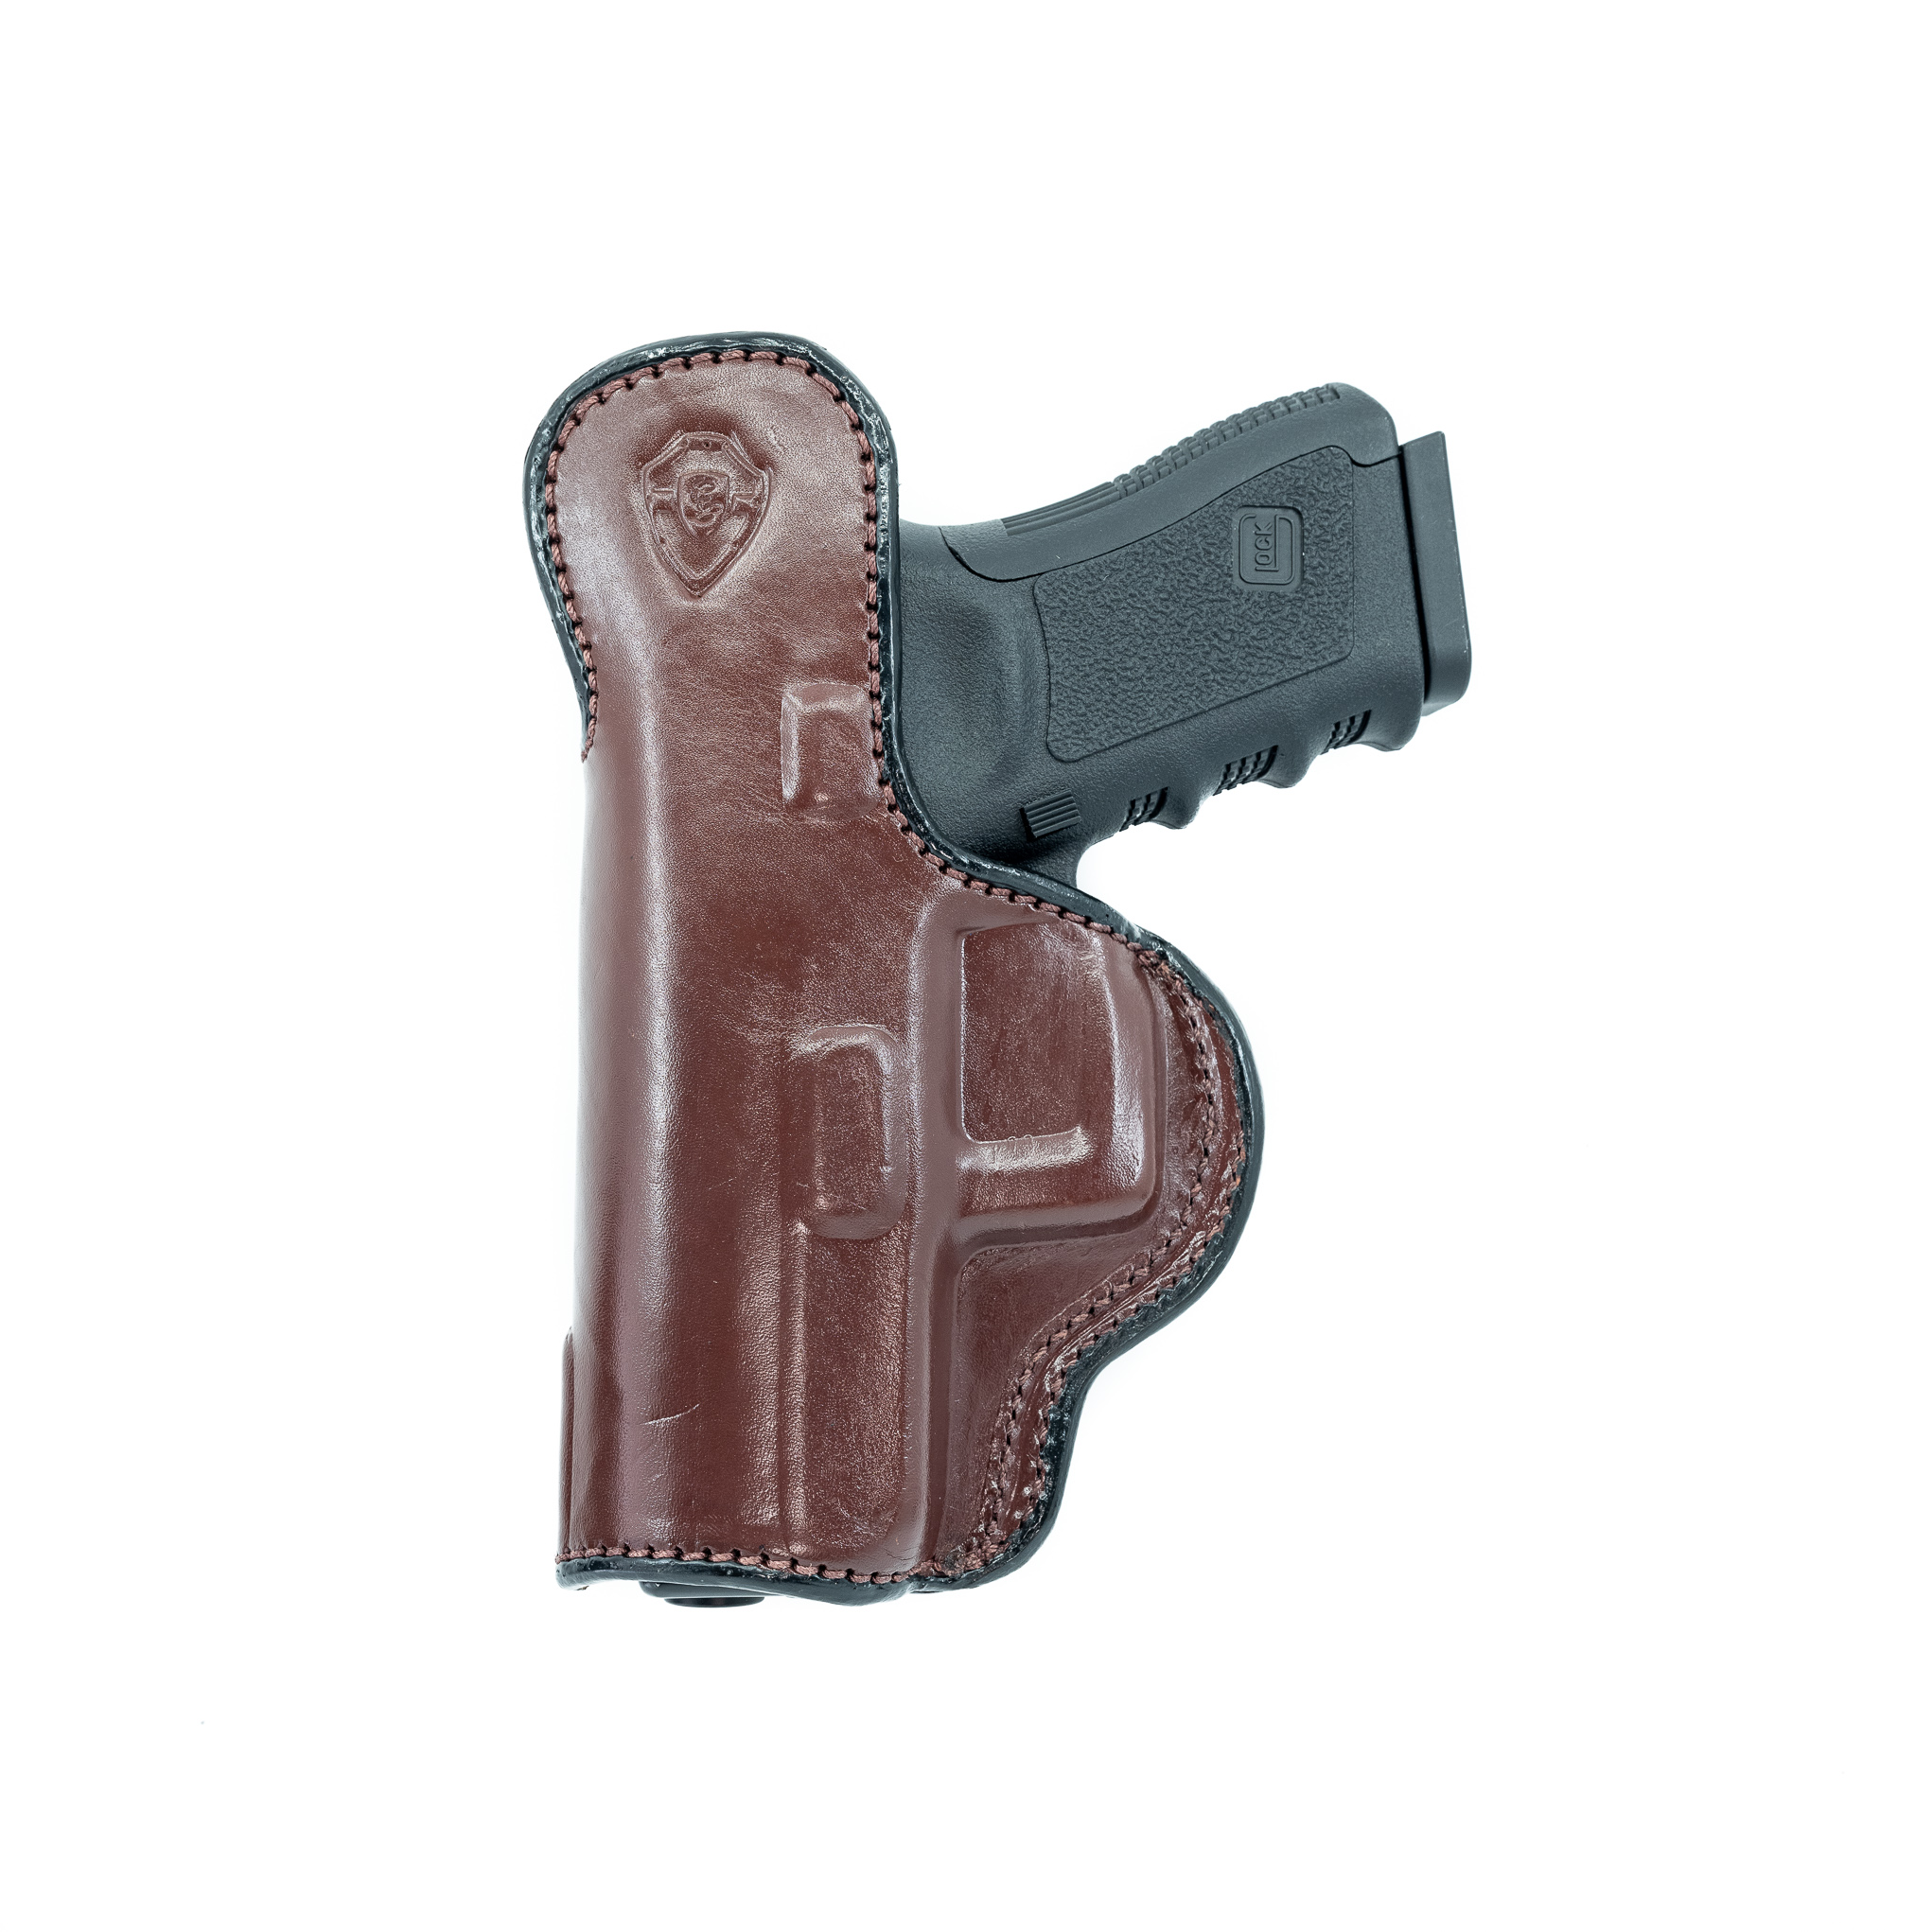 Details about GUN HOLSTER FOR FN FNX-9, FNX-40 & FNP-45  IWB LEATHER  HOLSTER CONCEAL CARRY